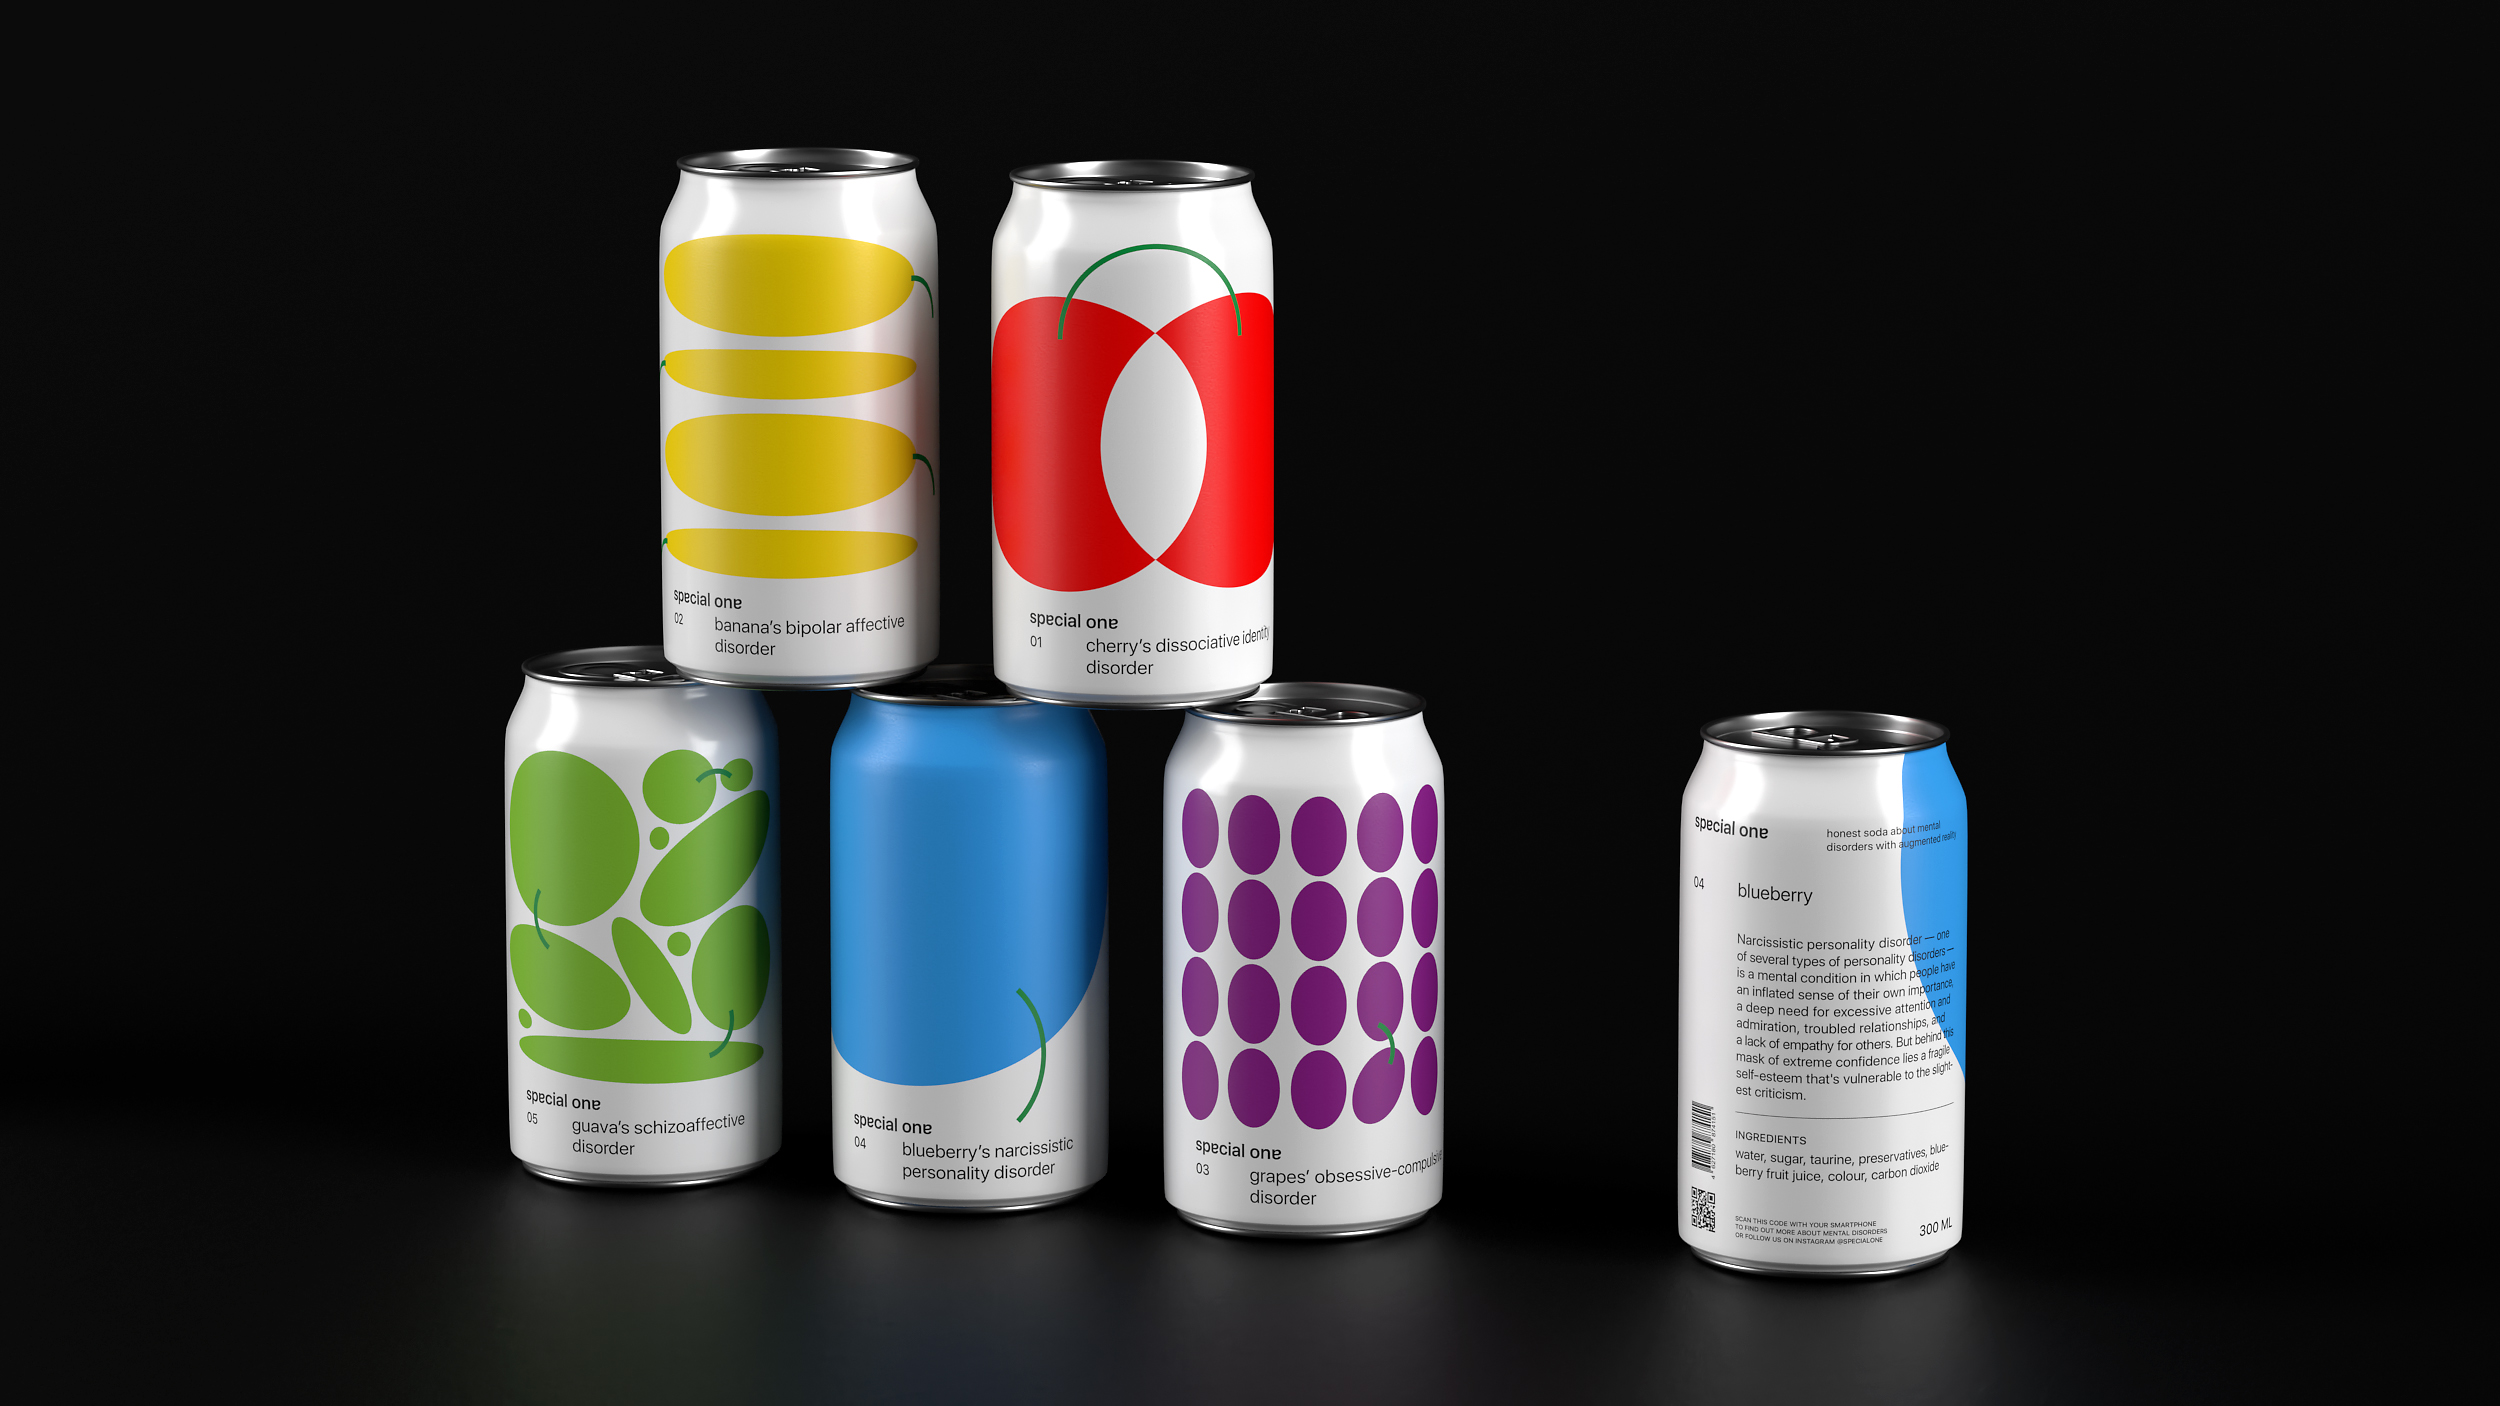 An Honest Soda About Mental Disorders Created by Student Gosha Chubukin